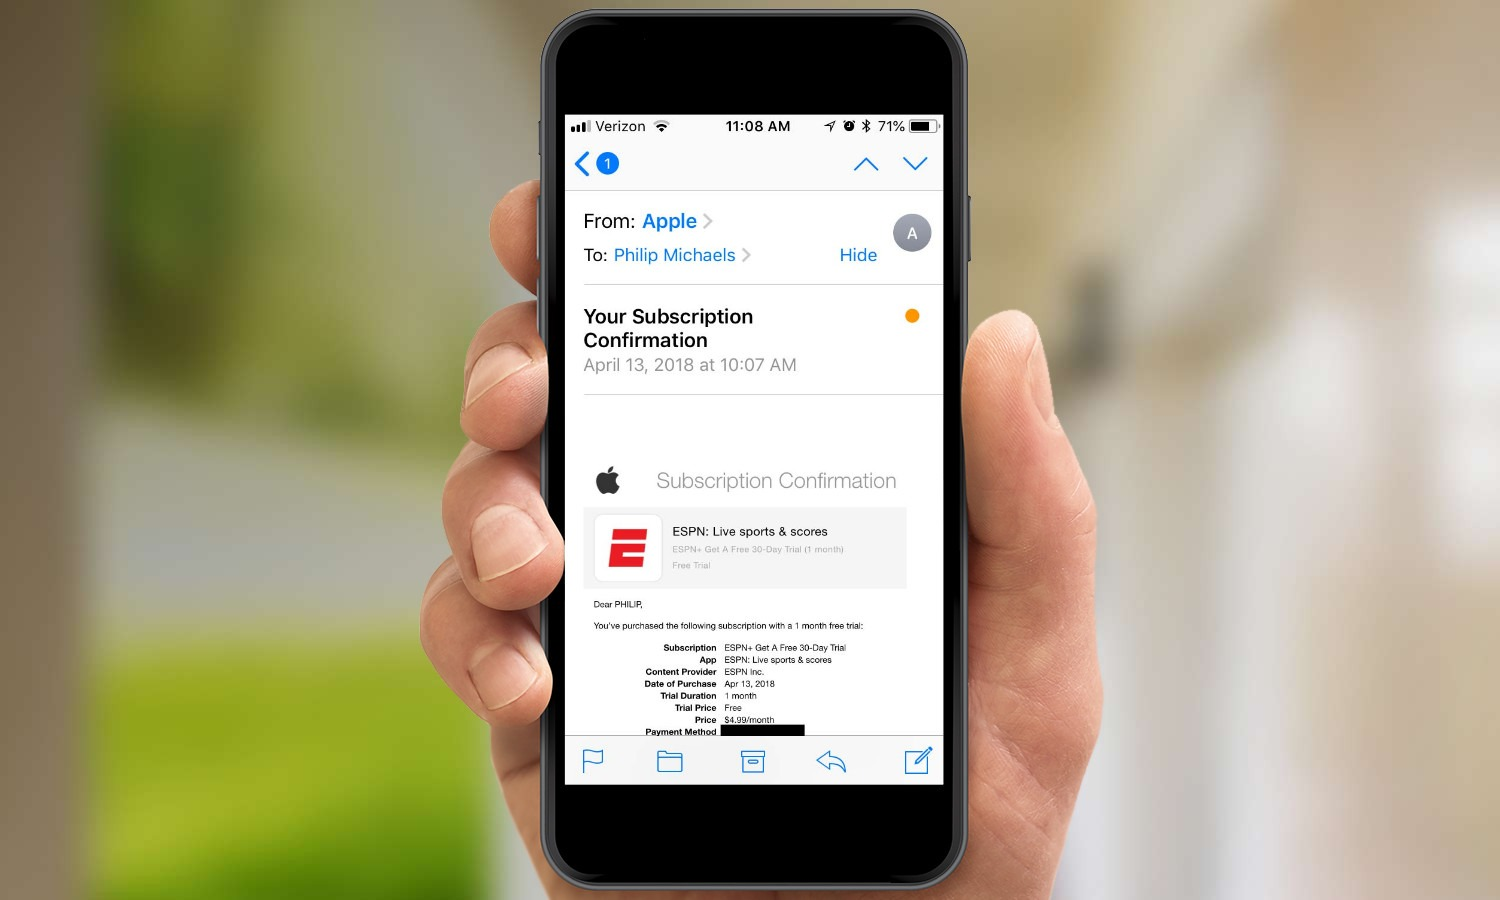 Heres How to Cancel IOS App Subscription on iPhone - IHOW